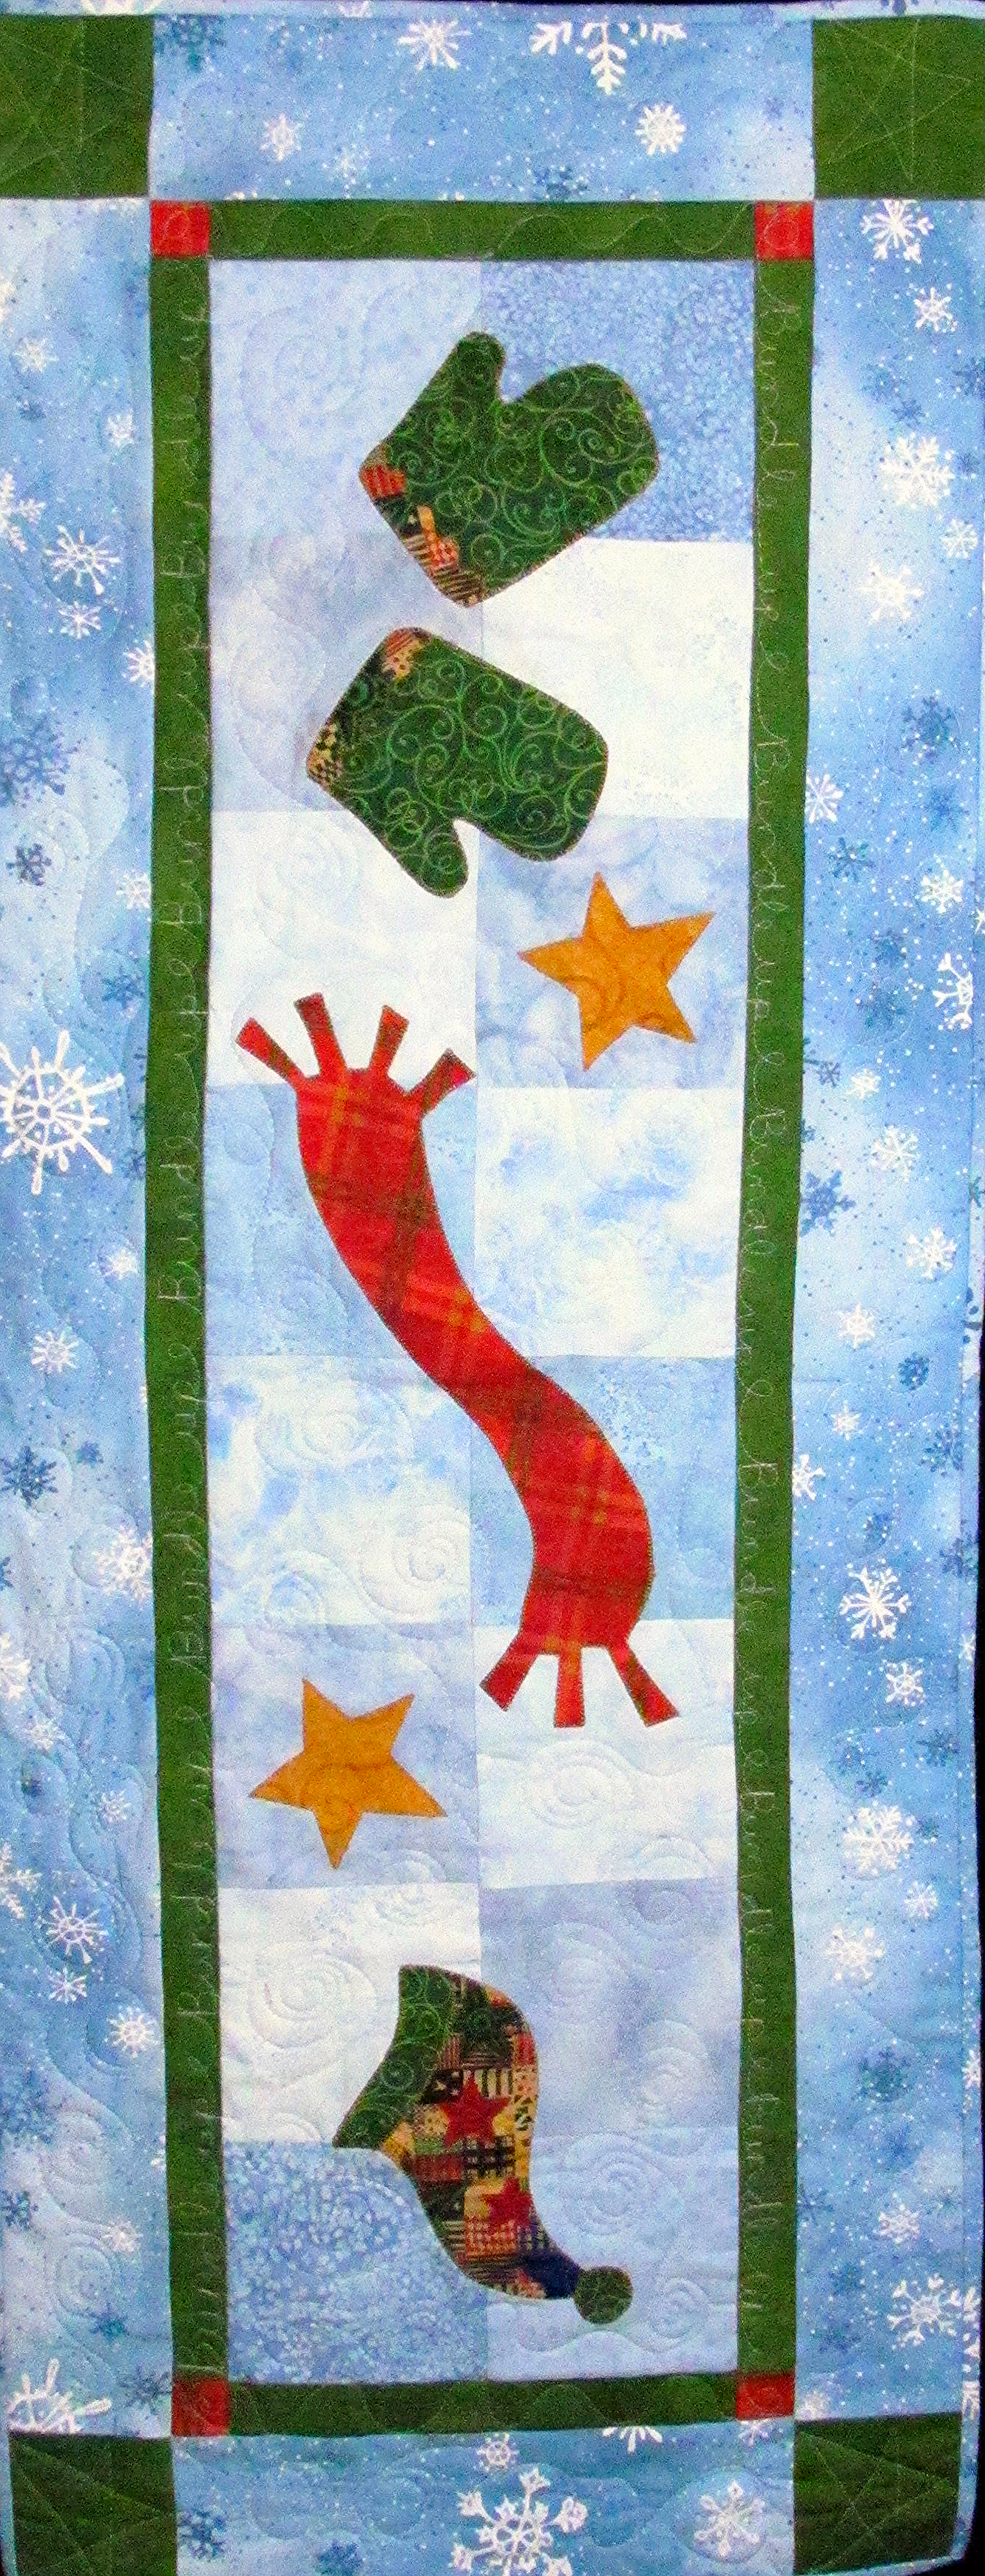 Bundle Up by Chatterbox Quilts can be either a table runner or a wall hanging.